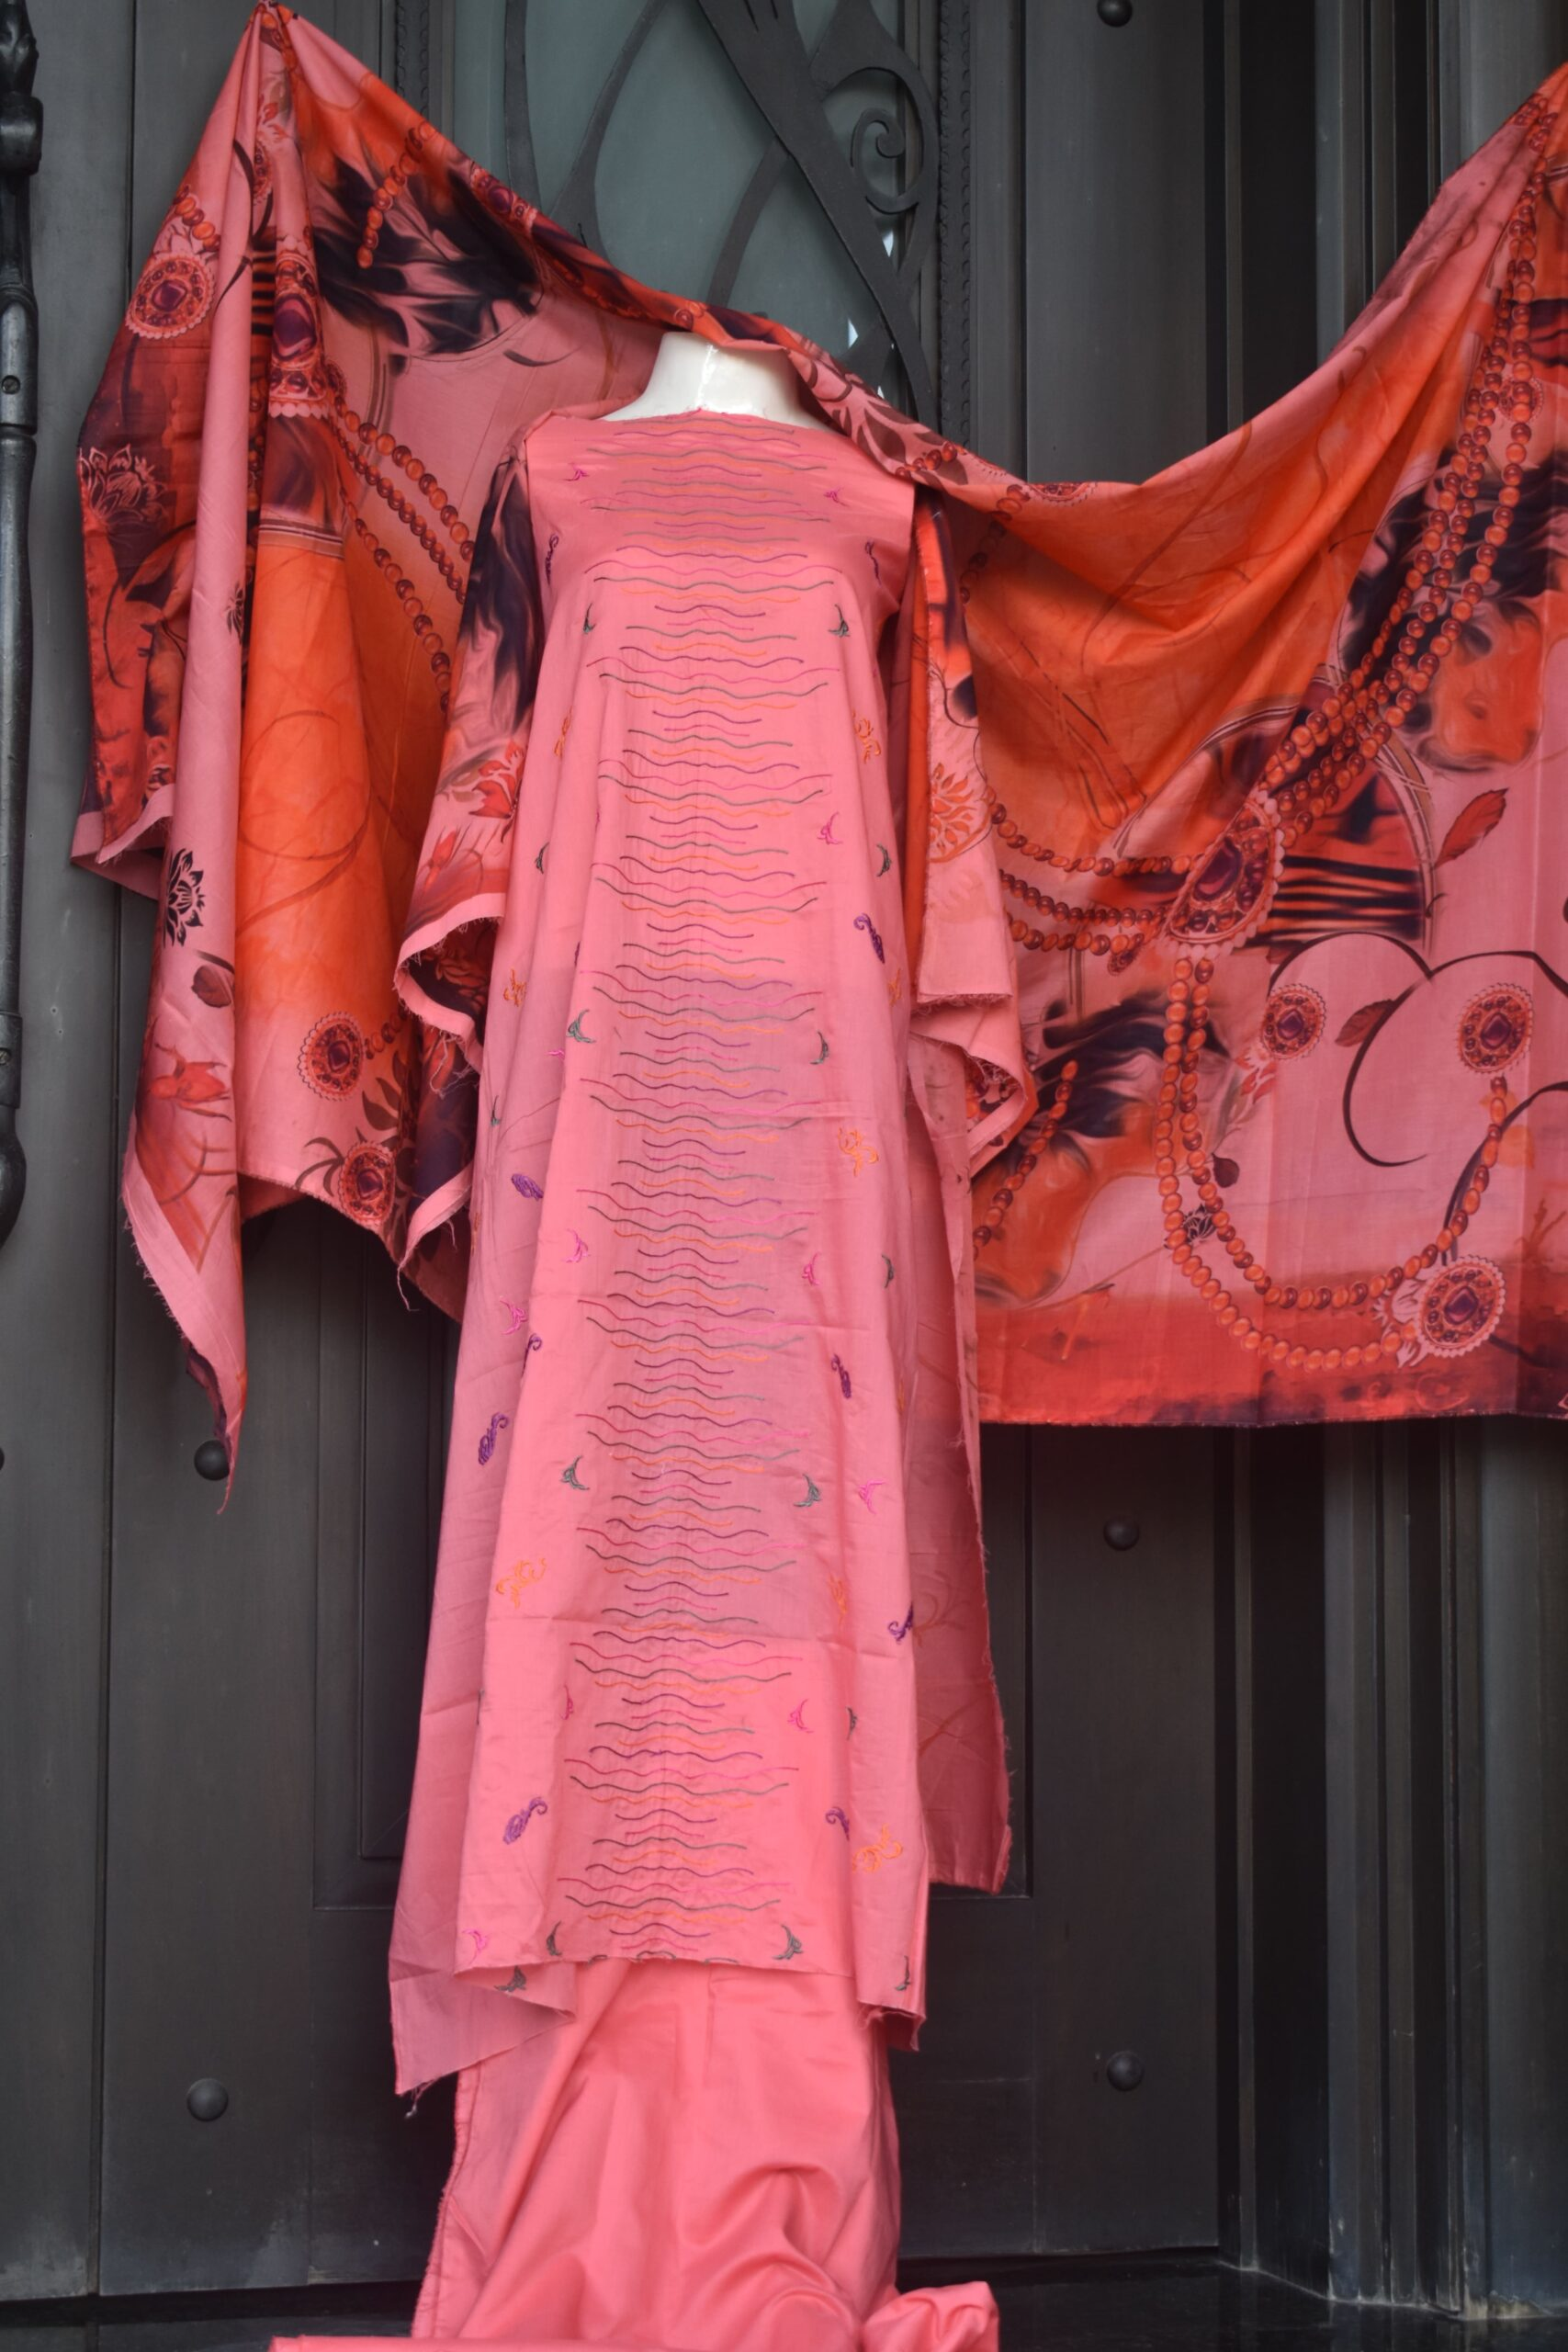 Unstitched chikankari with machine embroidery and digital print